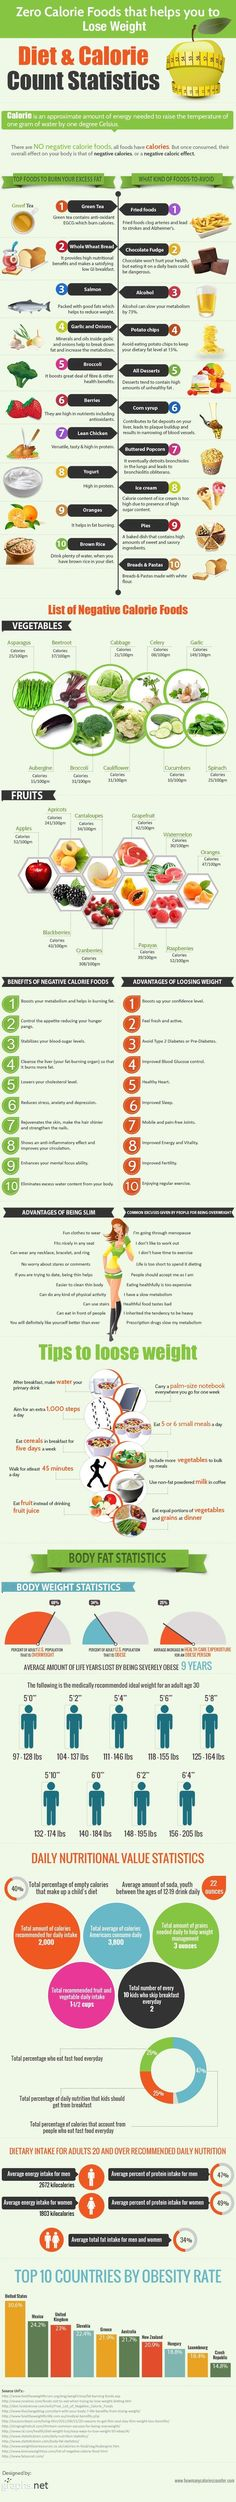 10 Super Slimming Tips For You – Expert's Tips #slimmingtips #weightlosstips